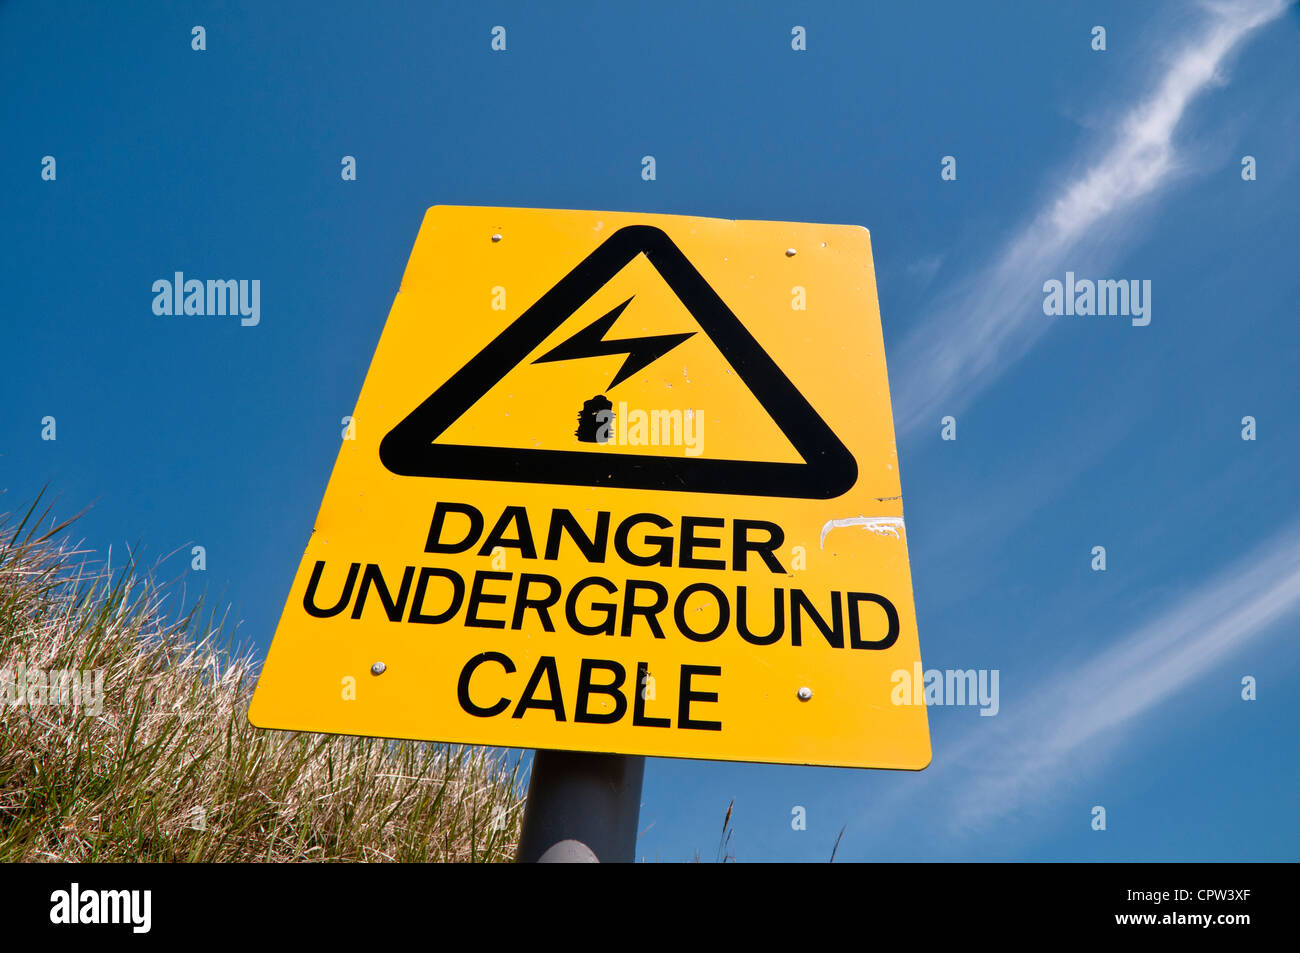 Underground Cable Stock Photos & Underground Cable Stock Images - Alamy